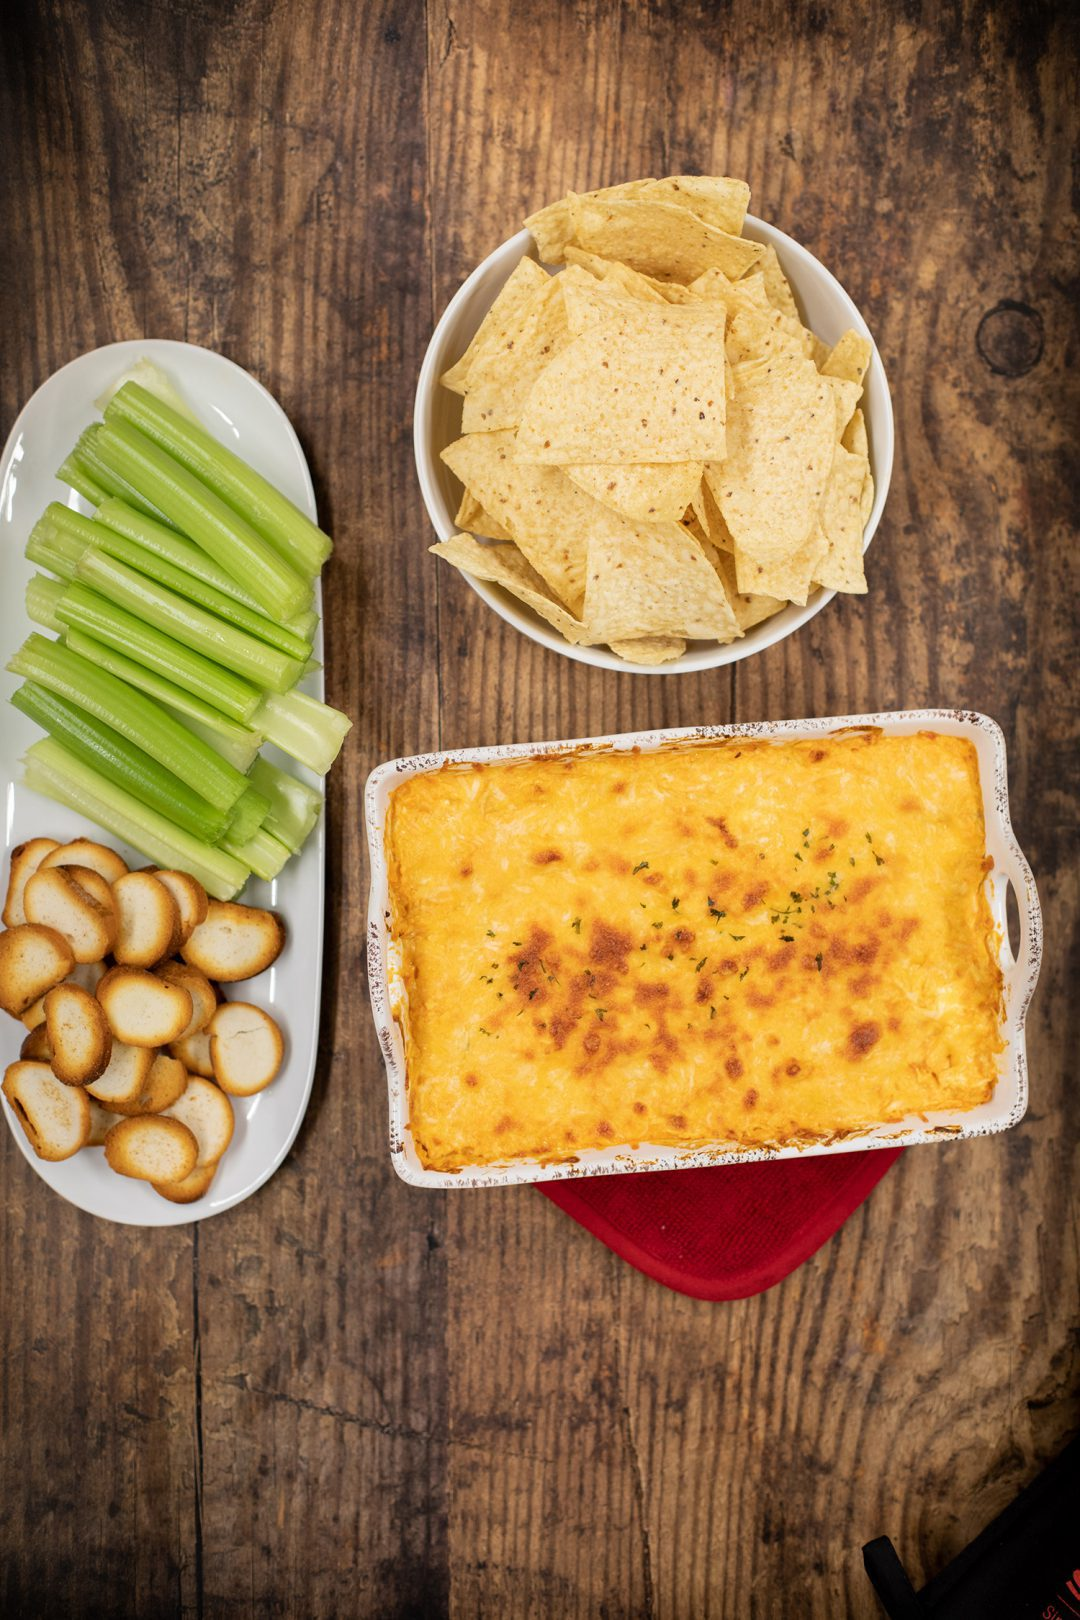 Buffalo dip on a table next to chips and celery.